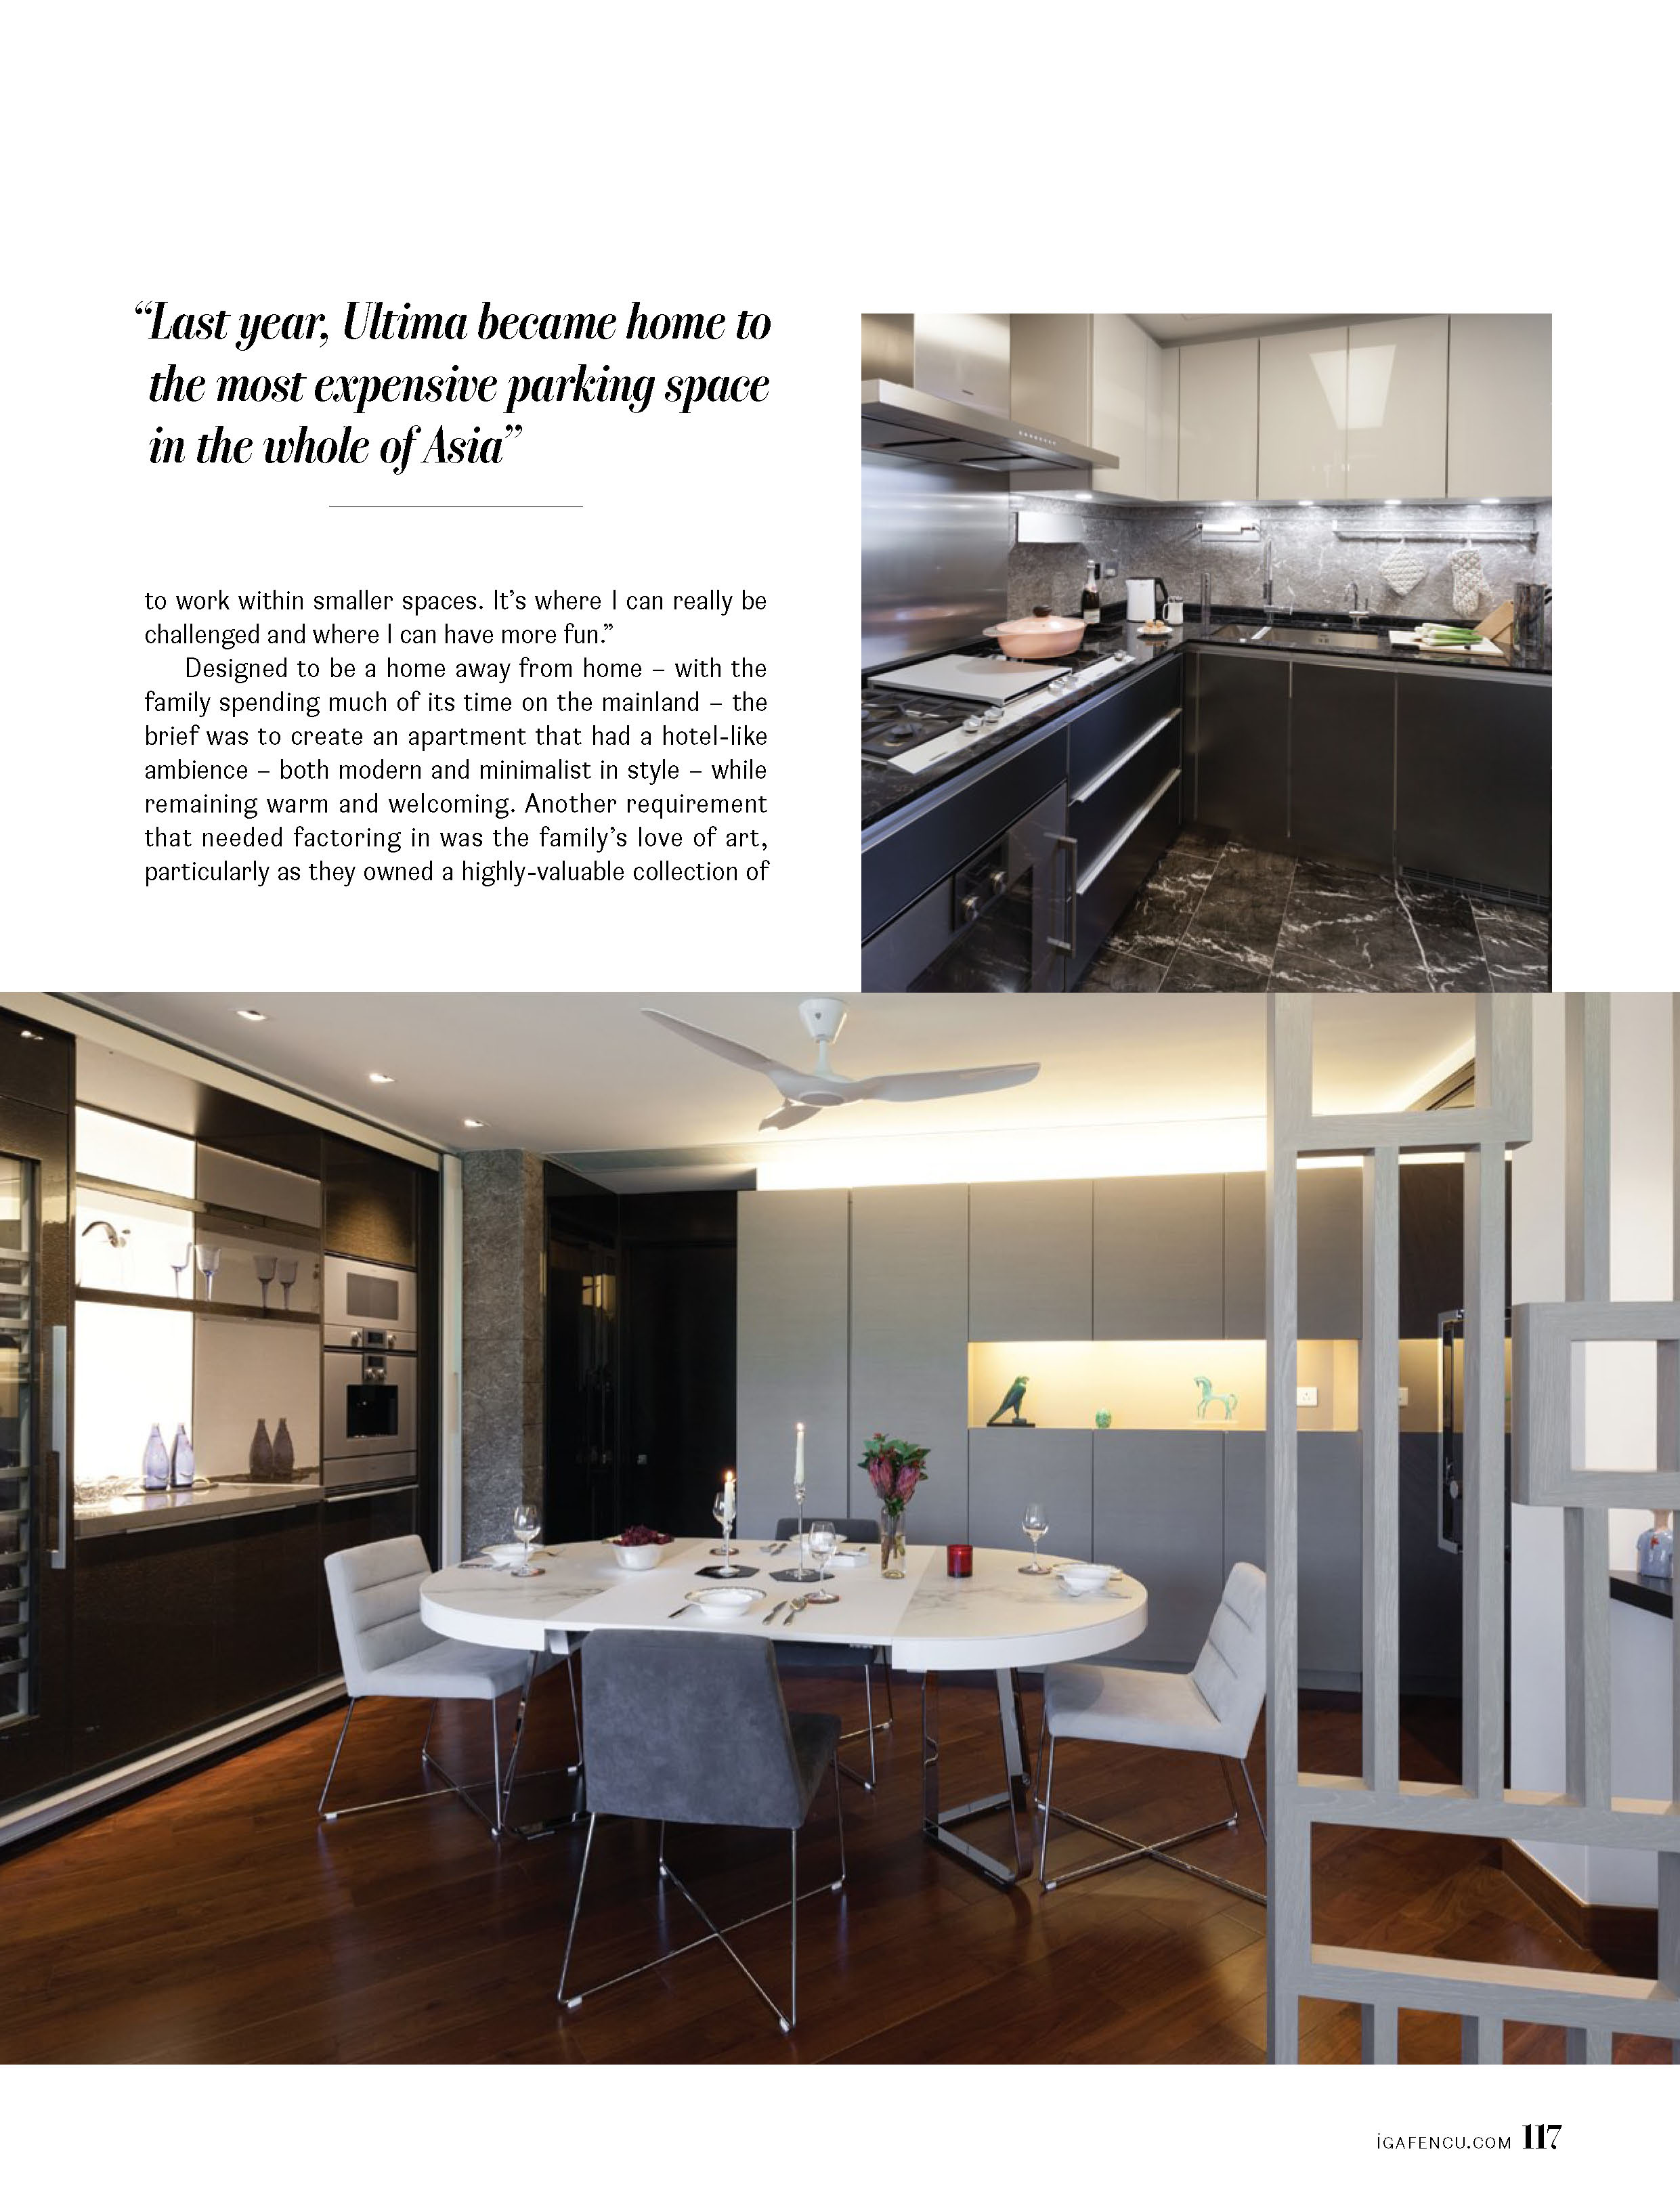 Hotel Style Home | Gafencu | March 2019 Issue - page4